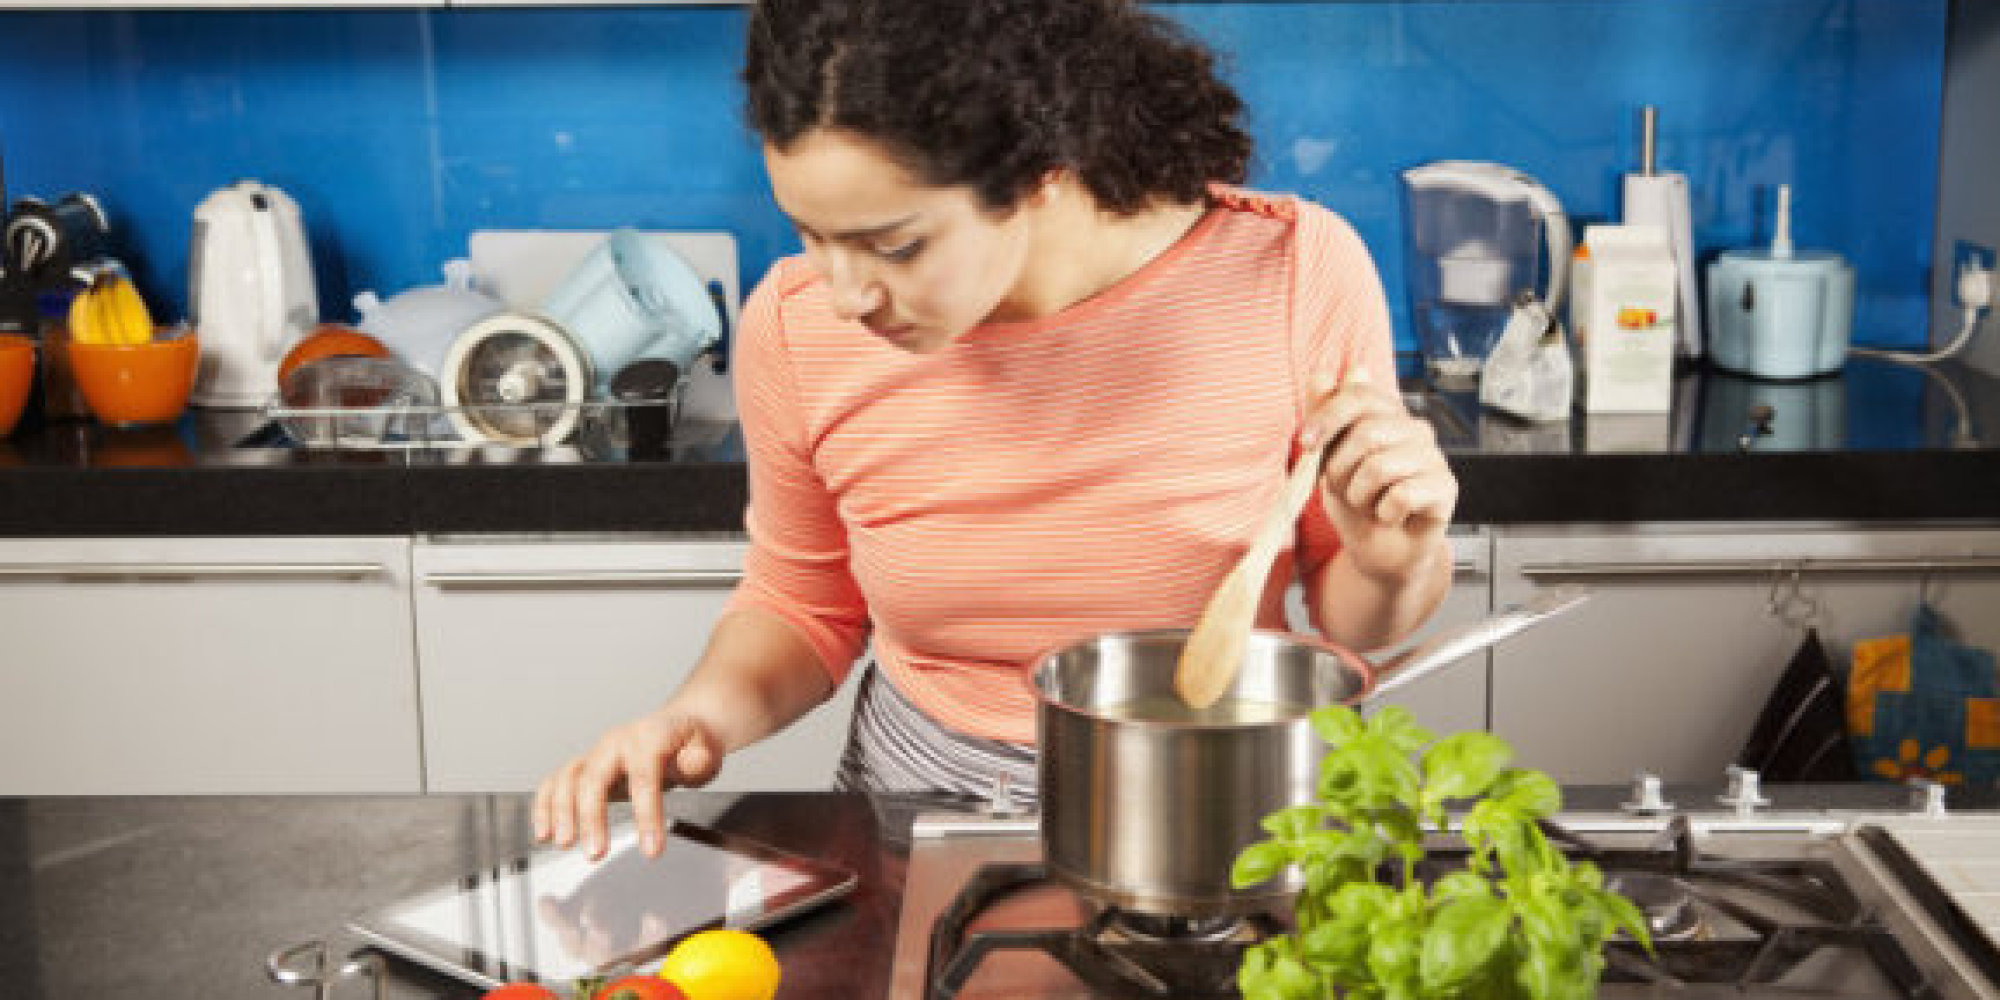 4 ways to make cooking at home doable and more fun huffpost - Home cooking ...